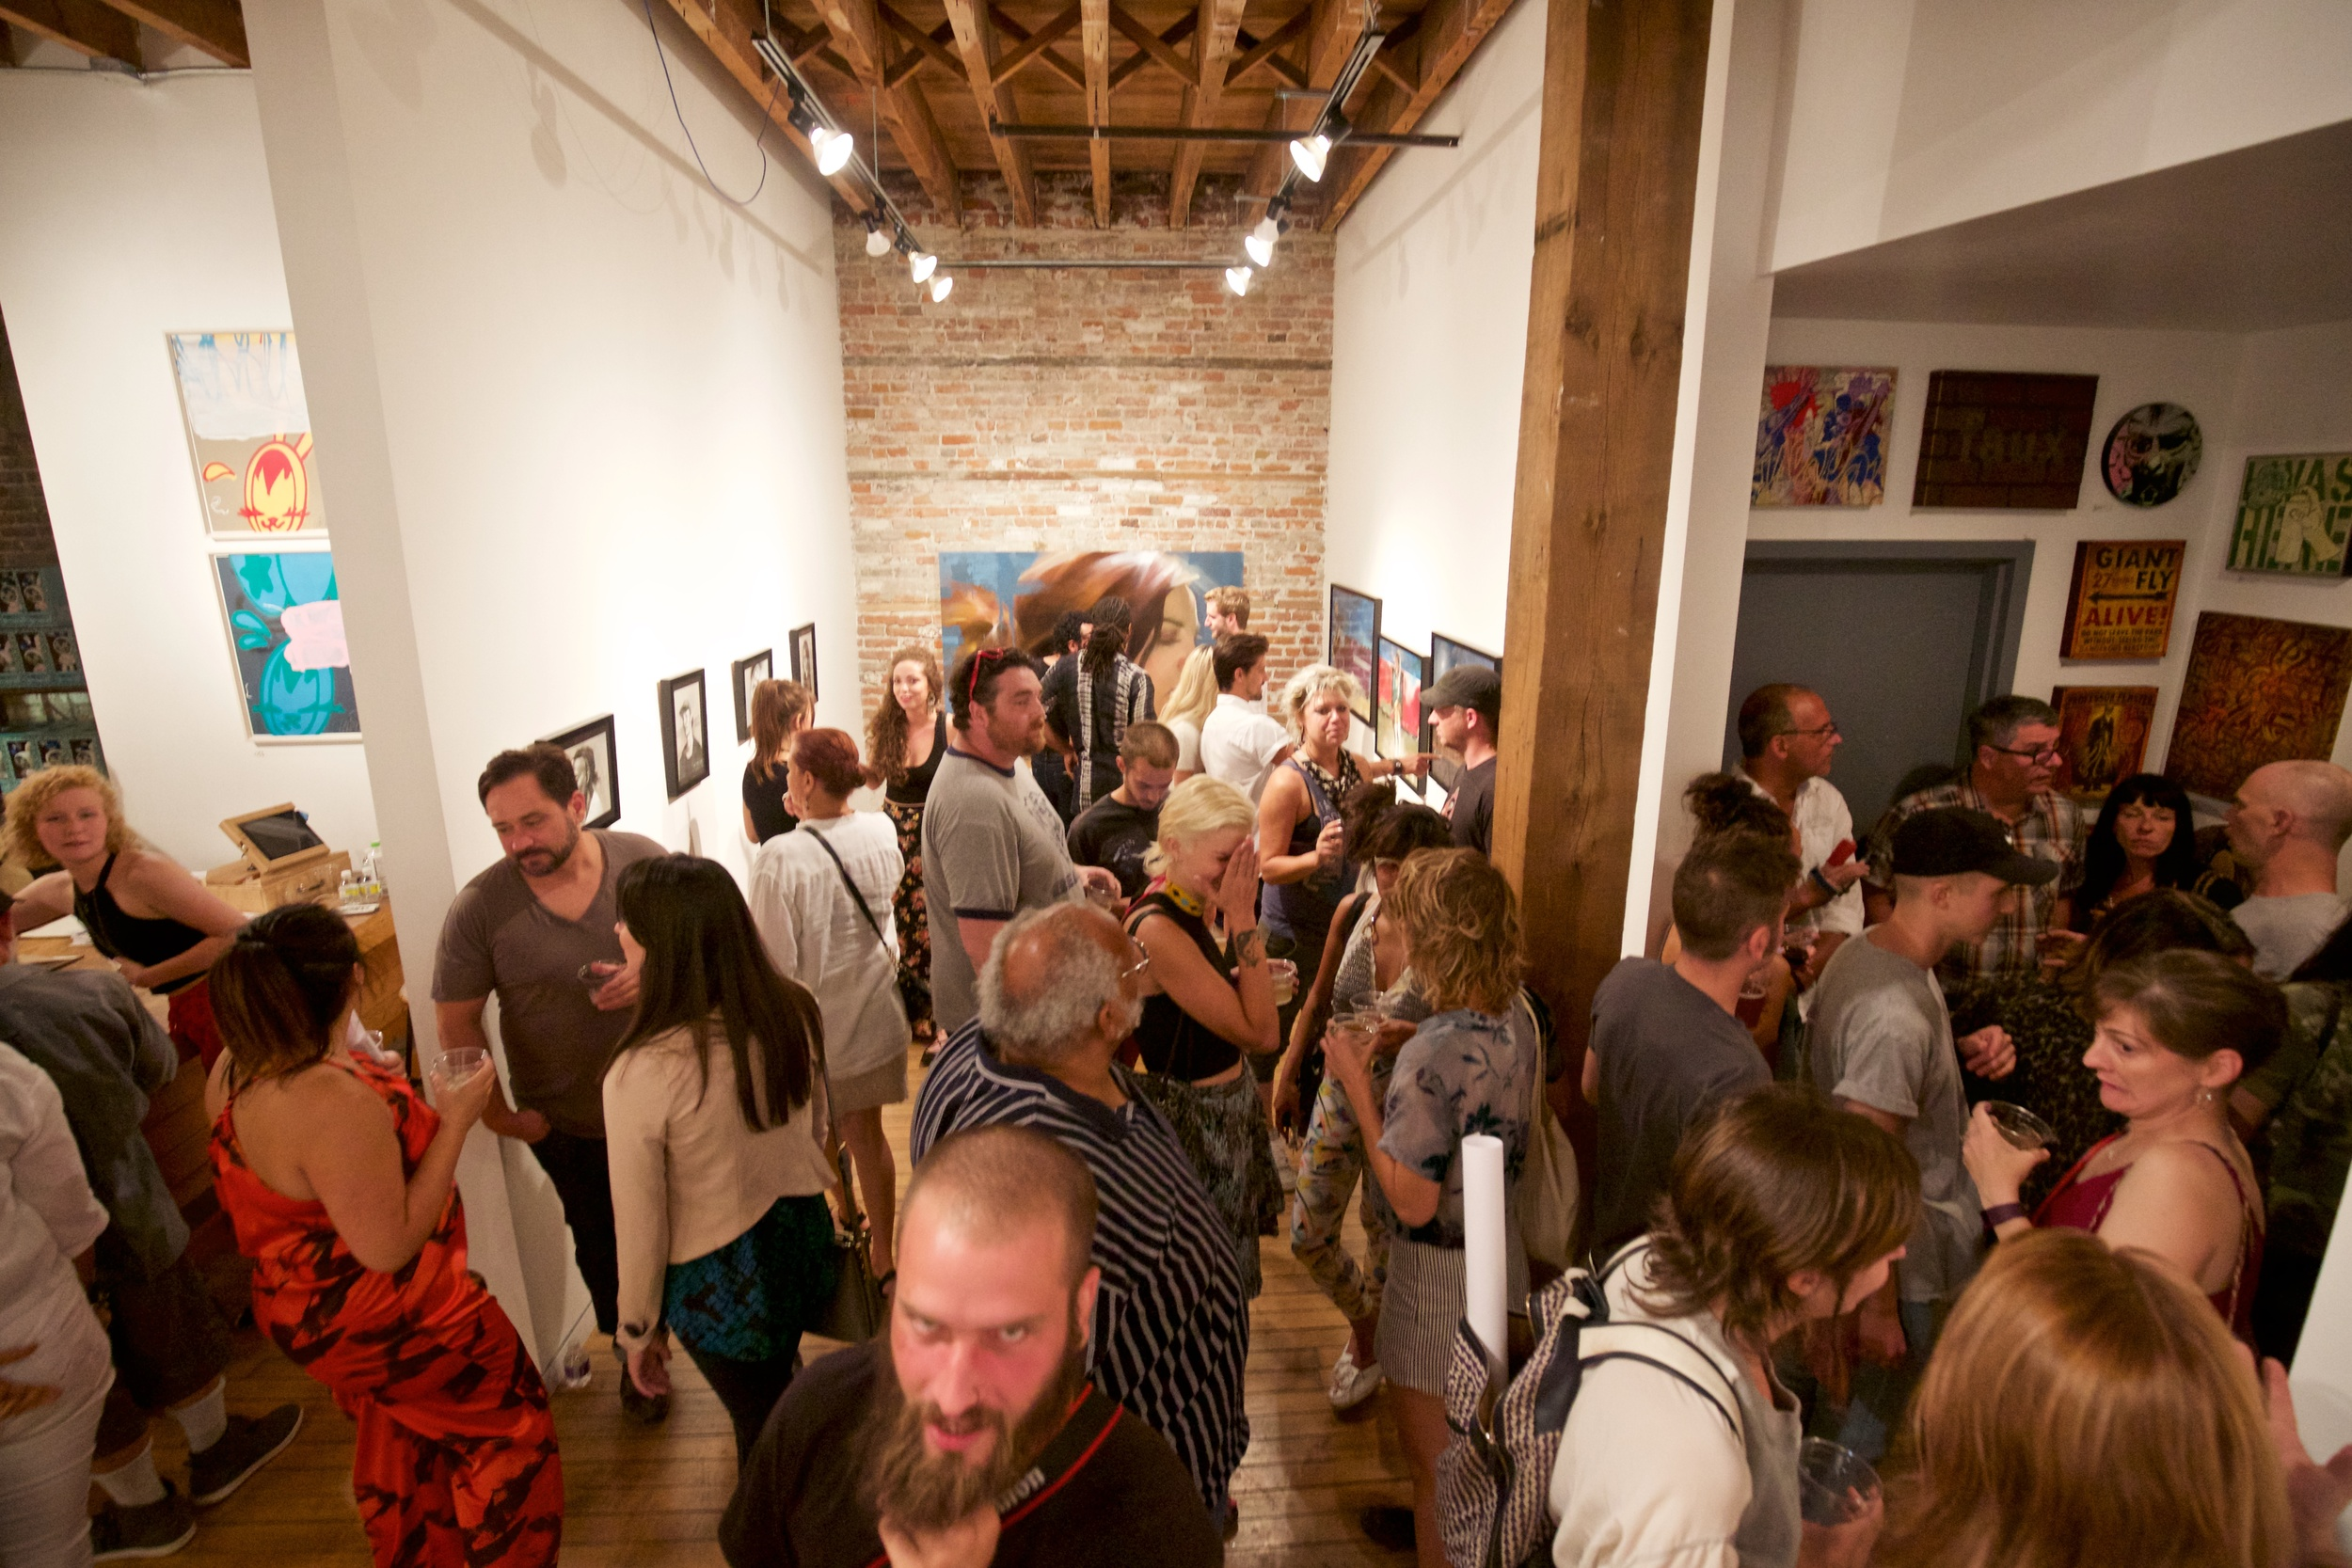 kwest-persue-jarus_inner-state-gallery_july152016_opening-night 66.jpg